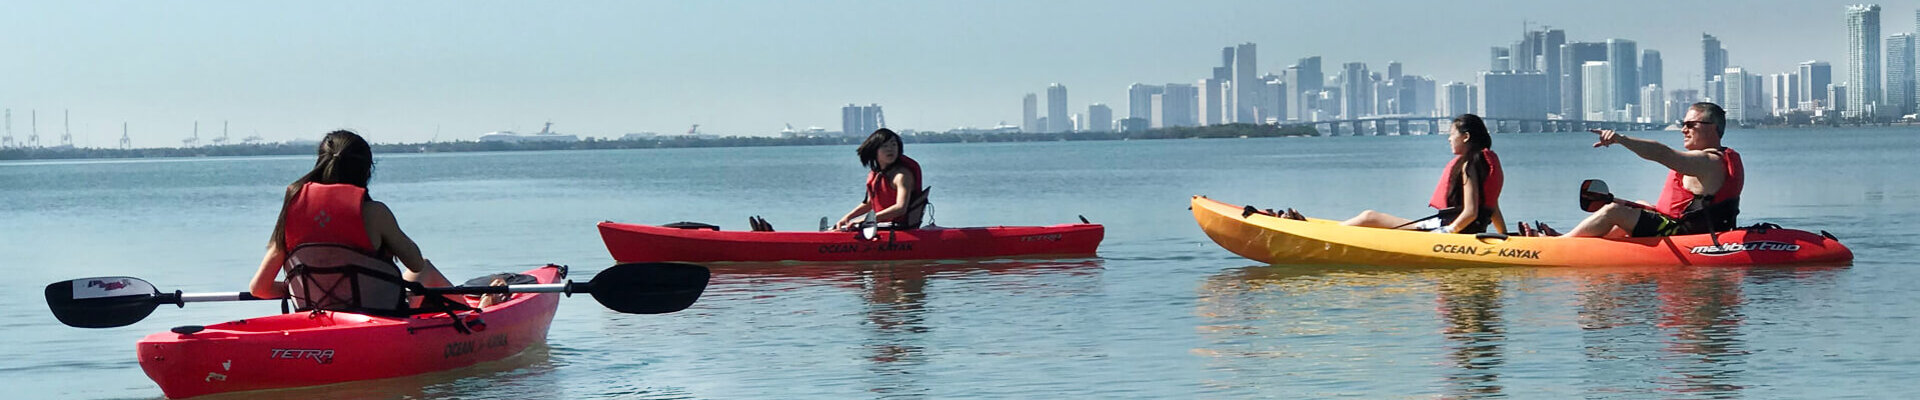 Kayak Rental Miami Beach Biscayne Bay